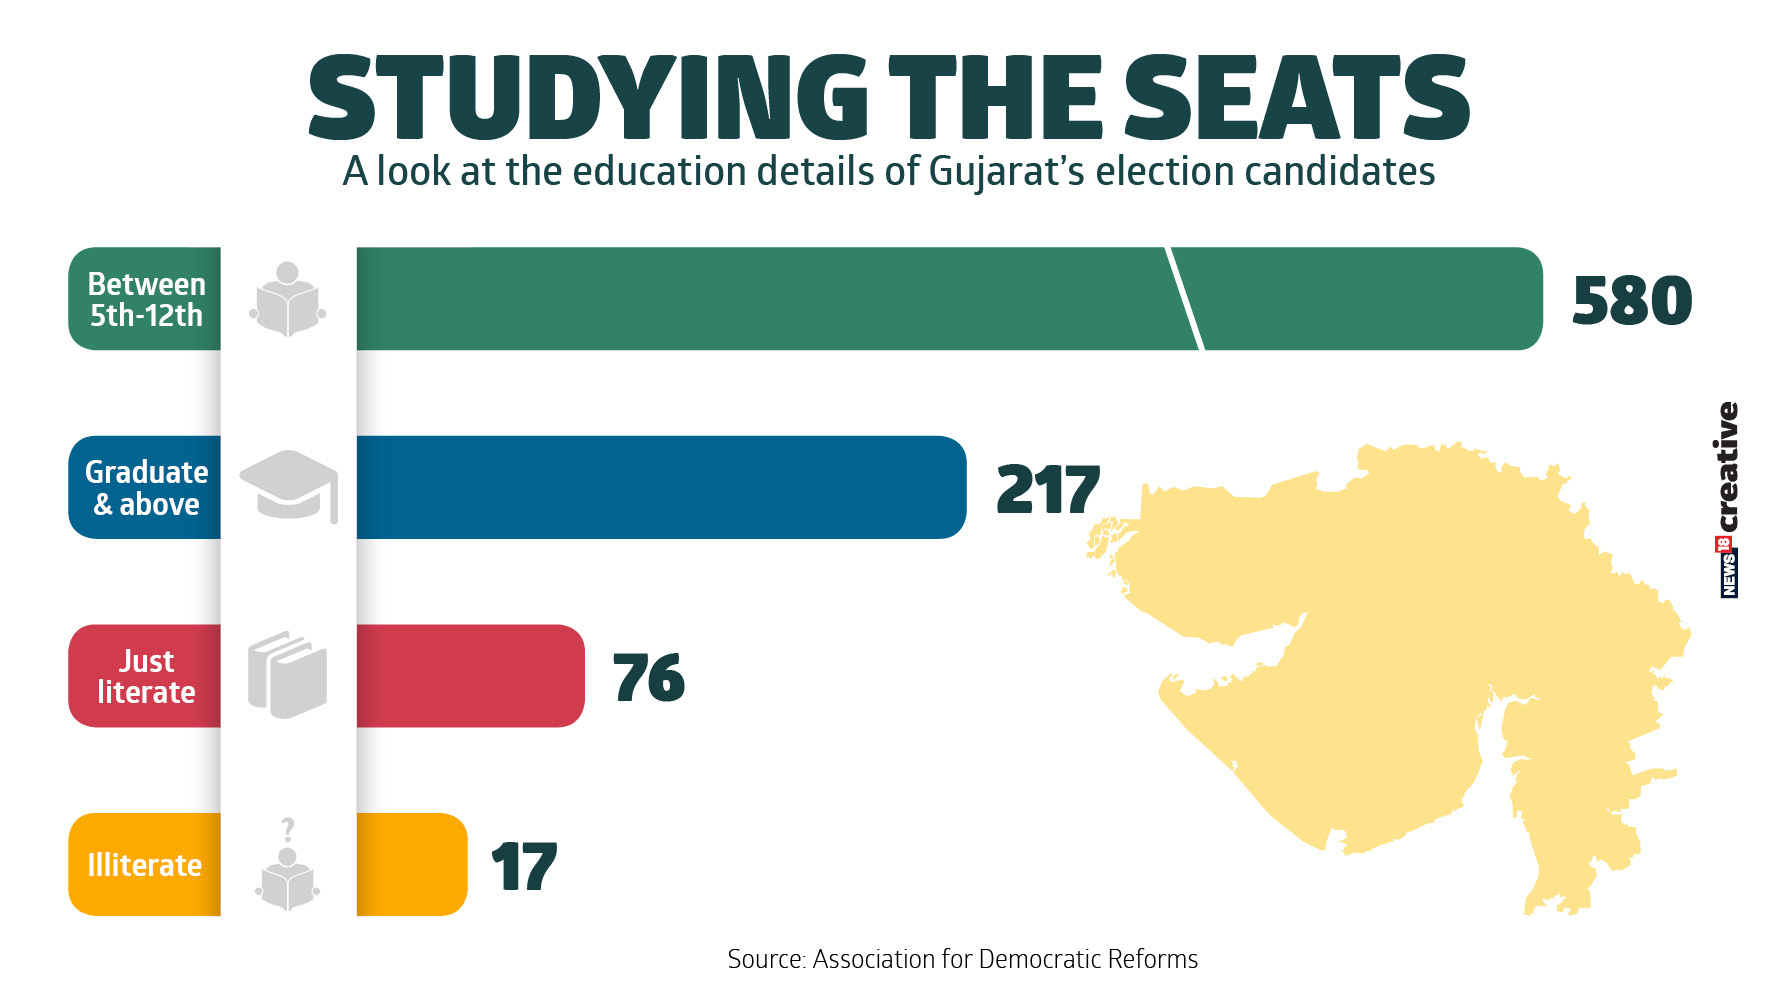 A look at the education details of Gujarat's election candidates